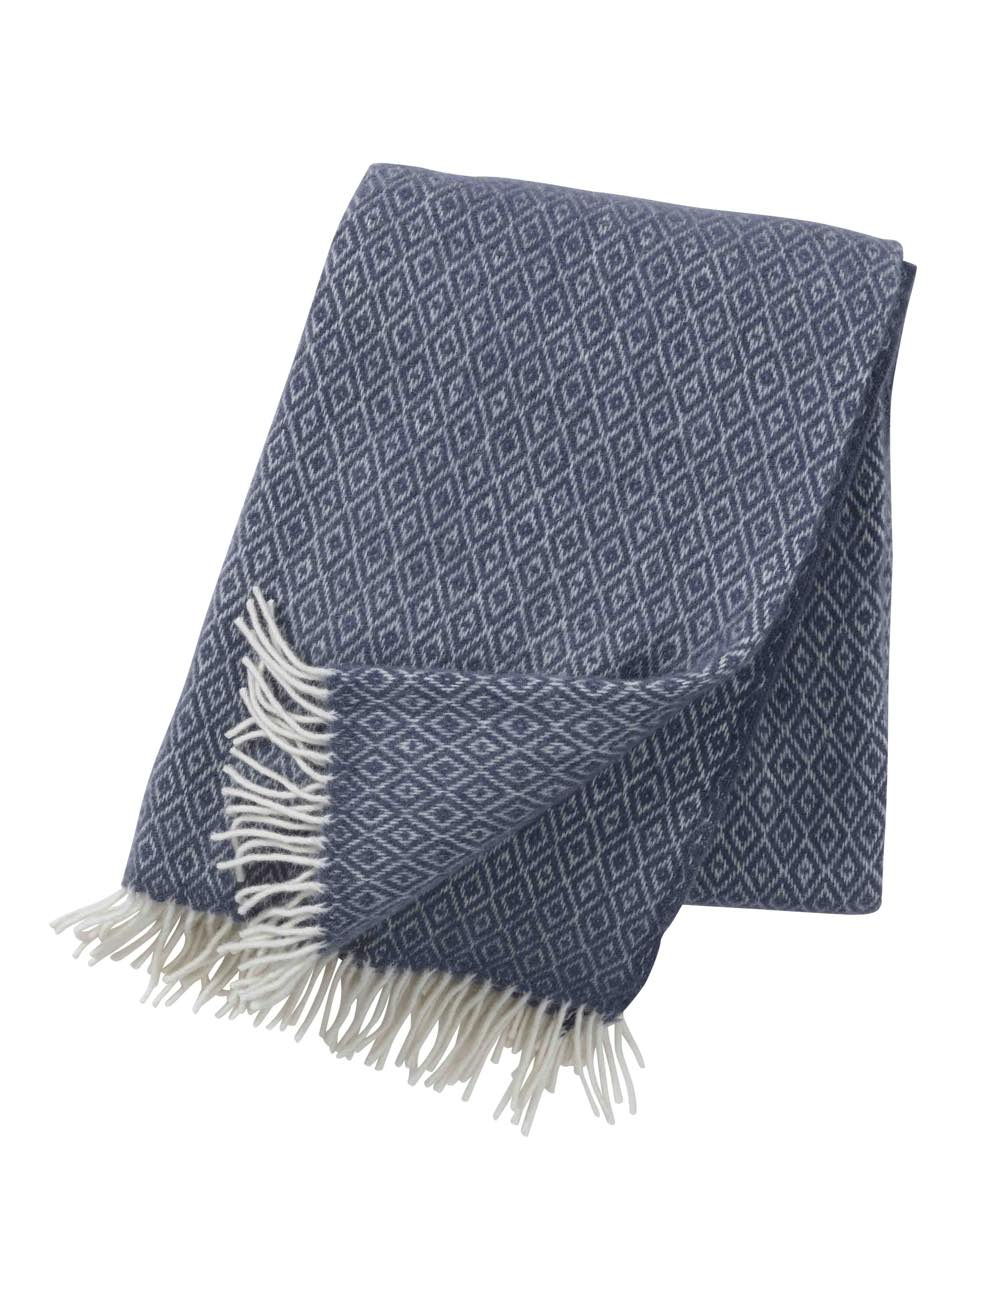 Stella Smokey Blue Blanket/Throw